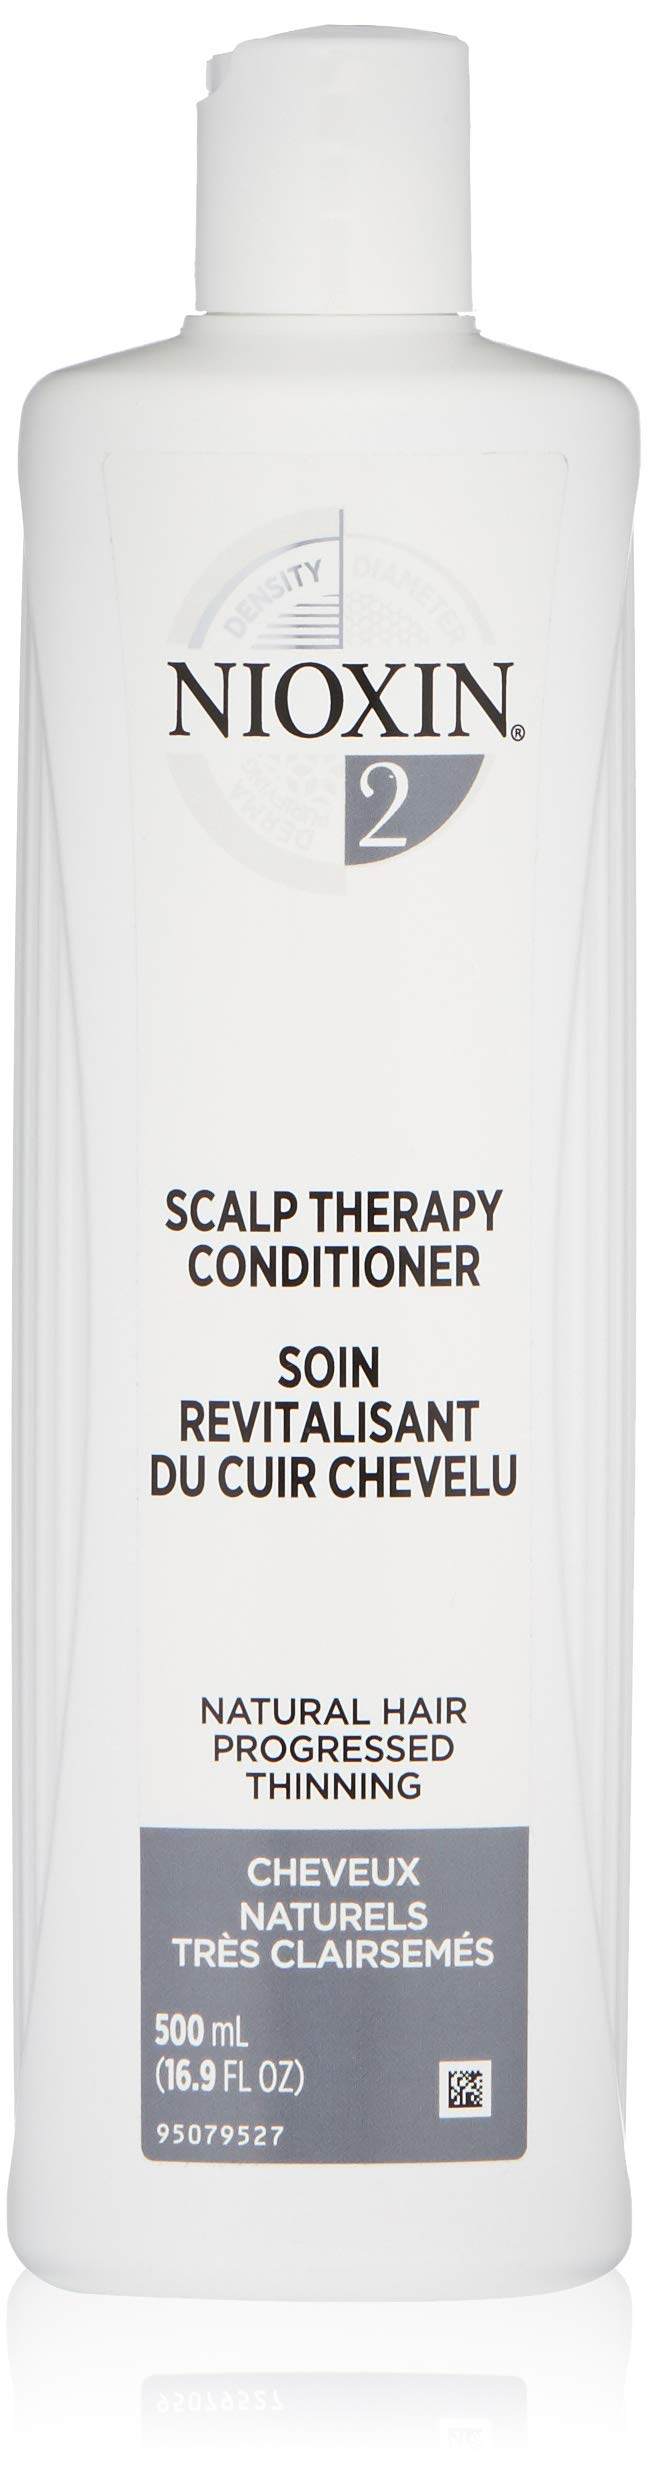 Nioxin System 2 Scalp Therapy Conditioner, Peppermint Oil, 16.9 oz.